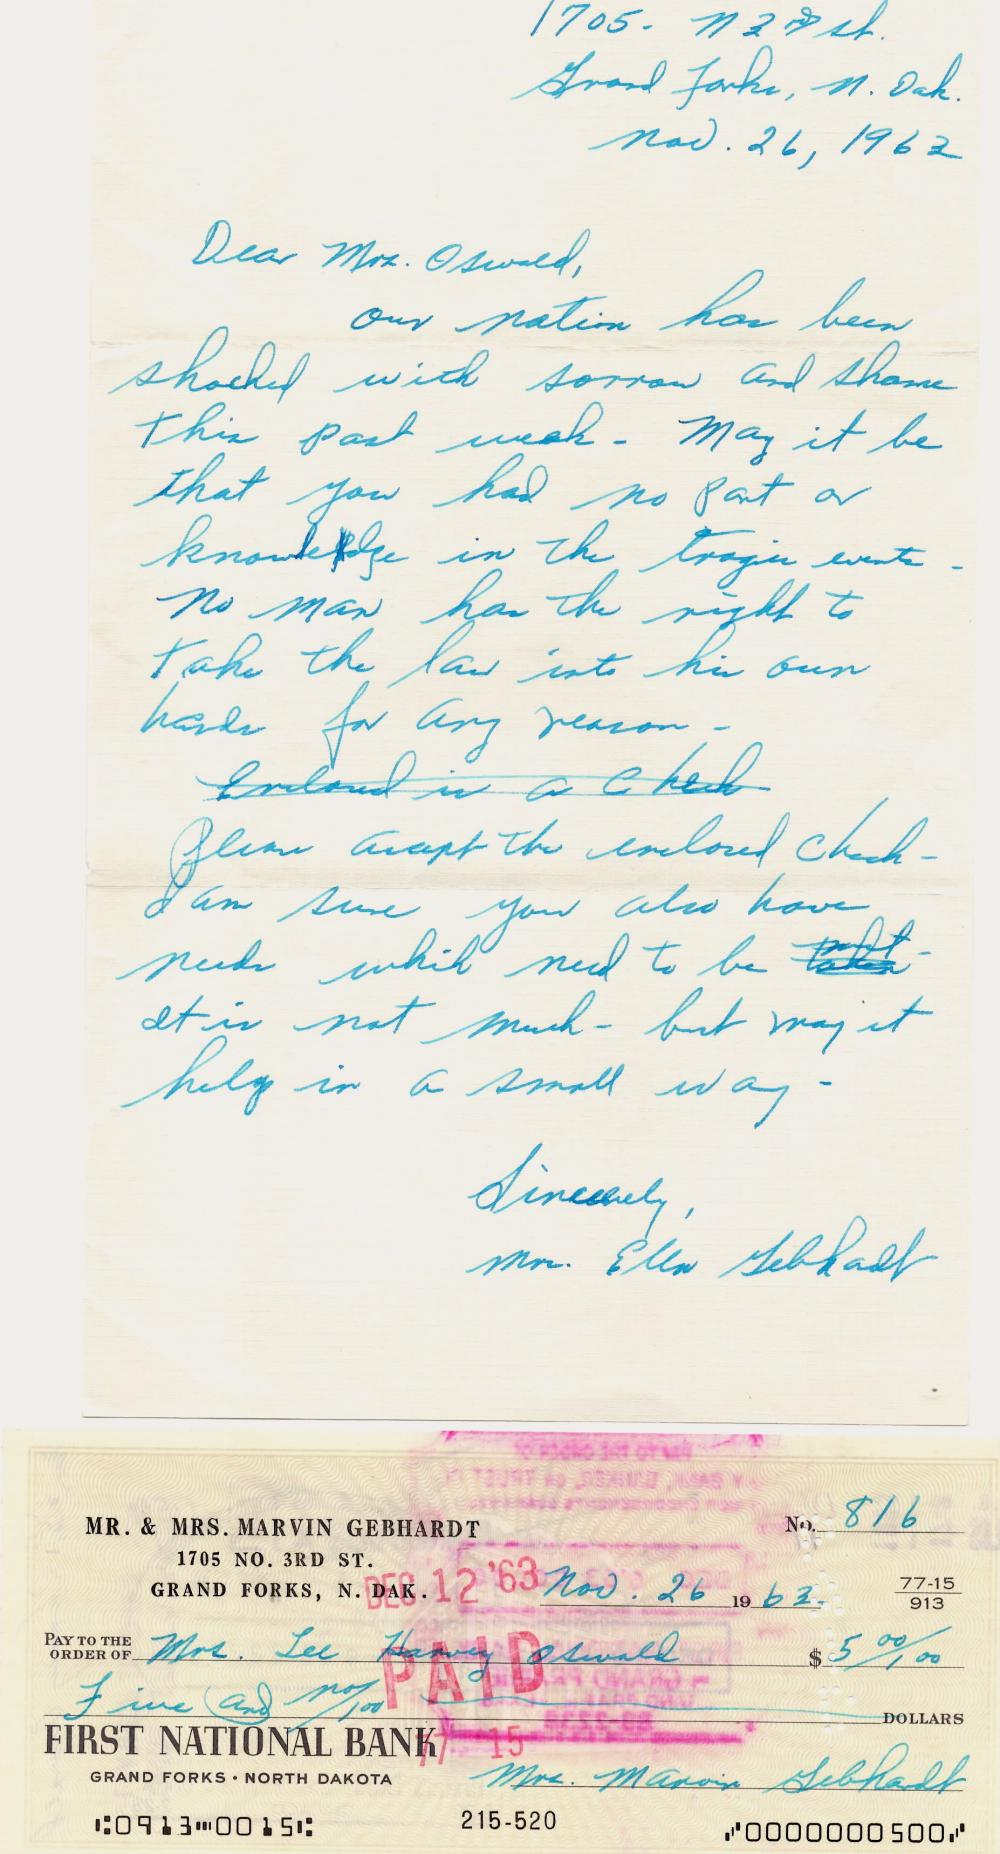 """""""Mrs. Lee Harvey Oswald"""" Rare Endorsed Check Signed Only a Few Days After Assassination!"""